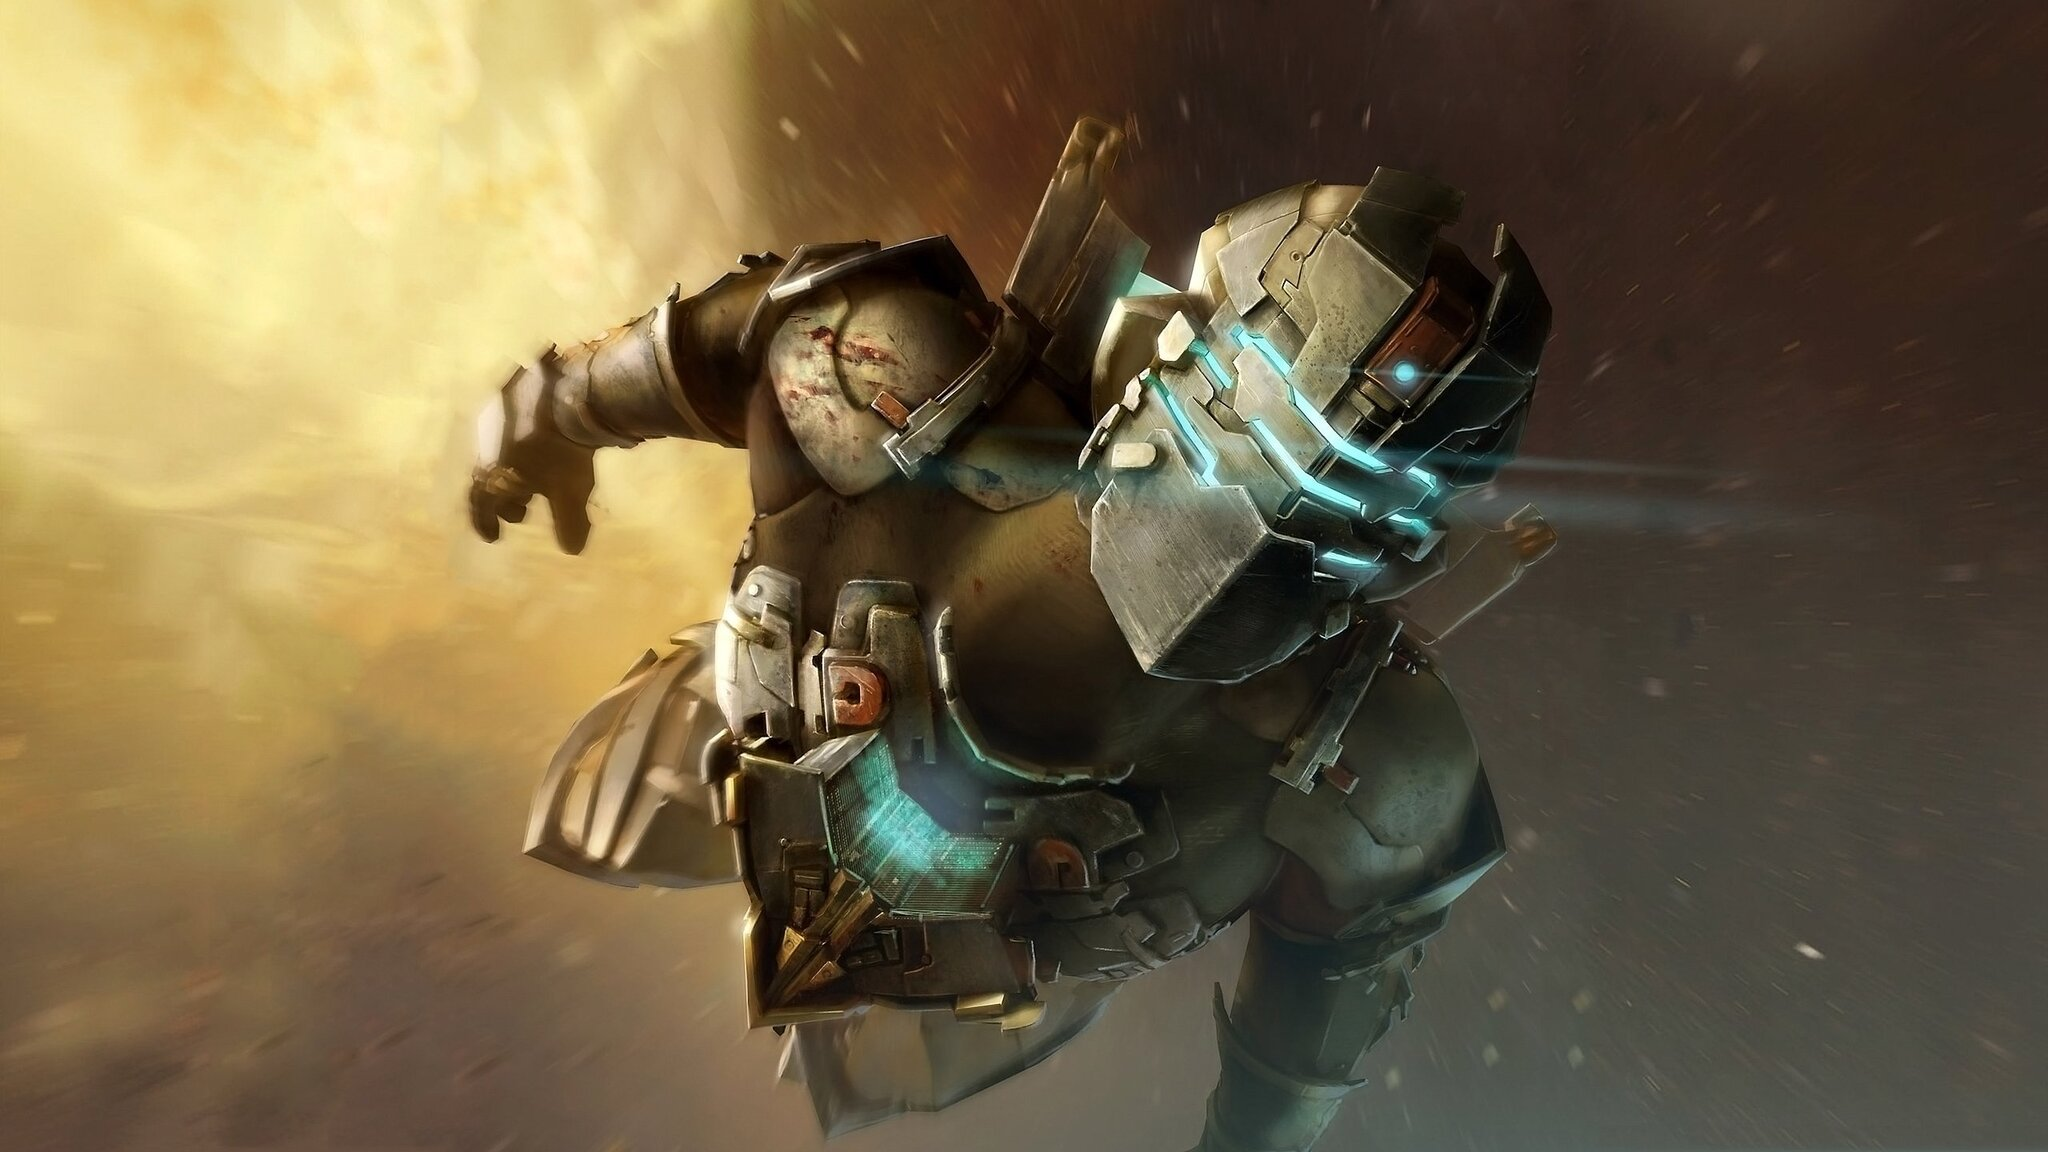 2048x1152 Dead Space 2 Video Game 2048x1152 Resolution Hd 4k